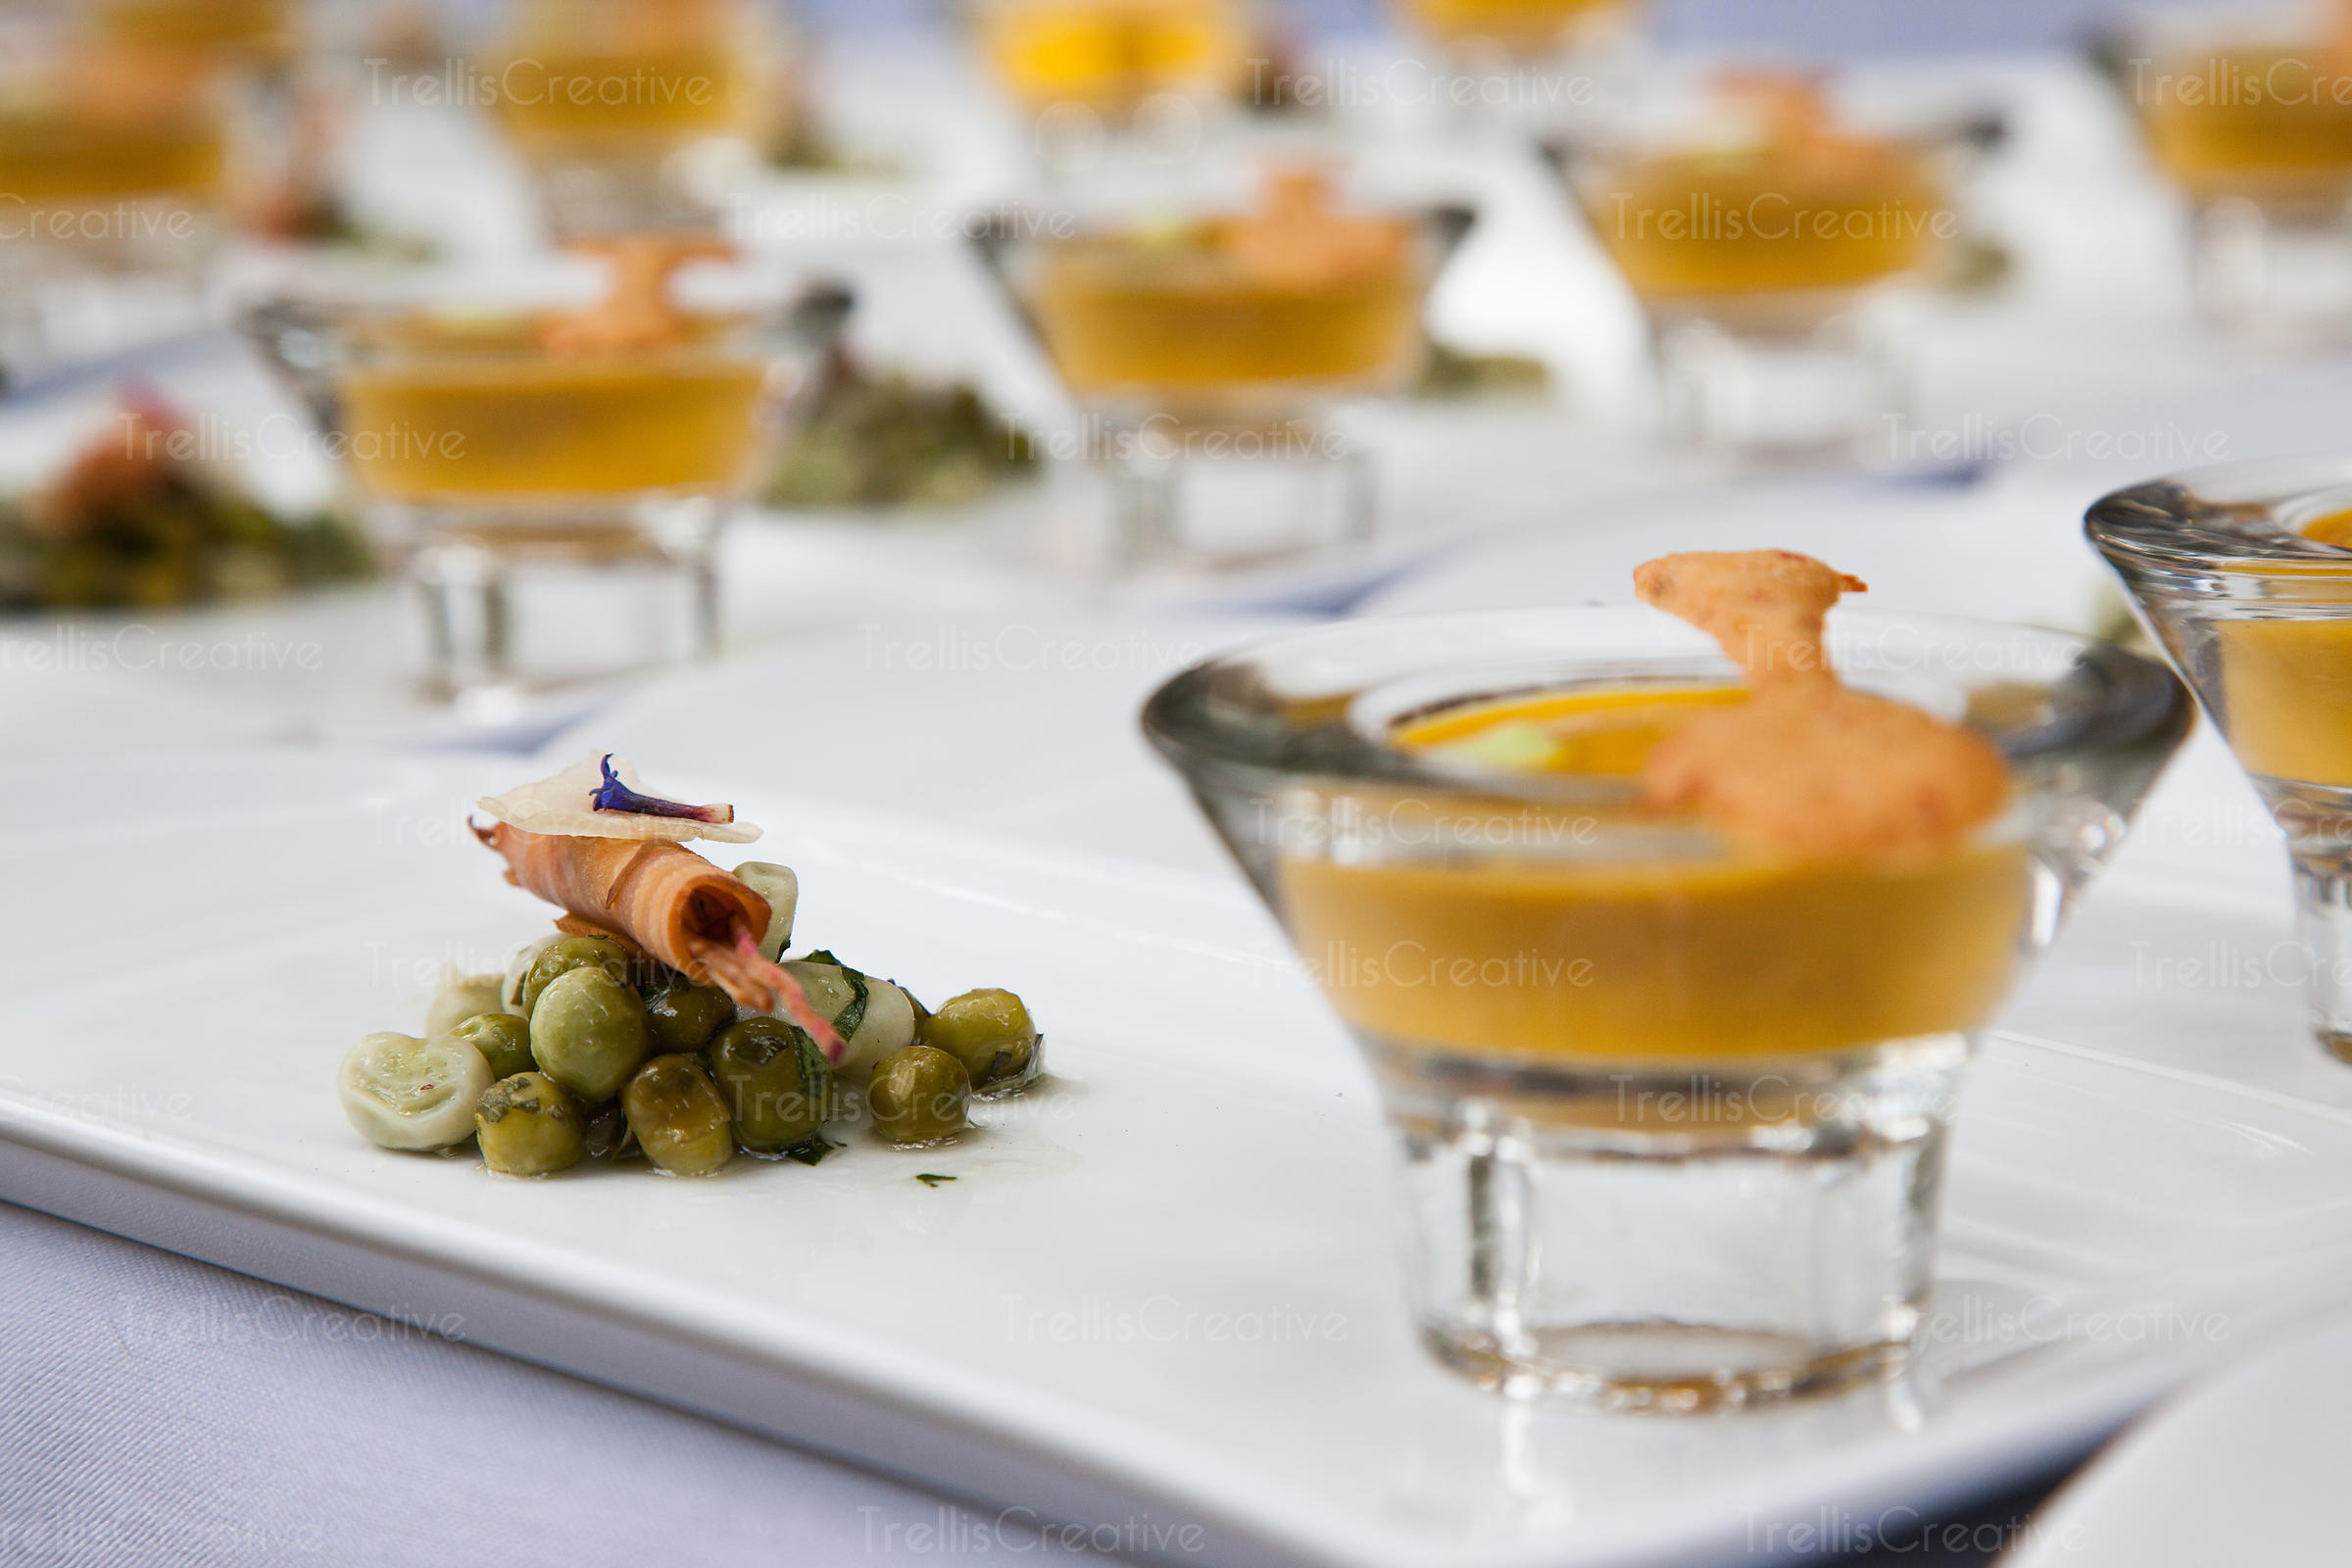 Small cups of soup with green peas lined up for service at an event